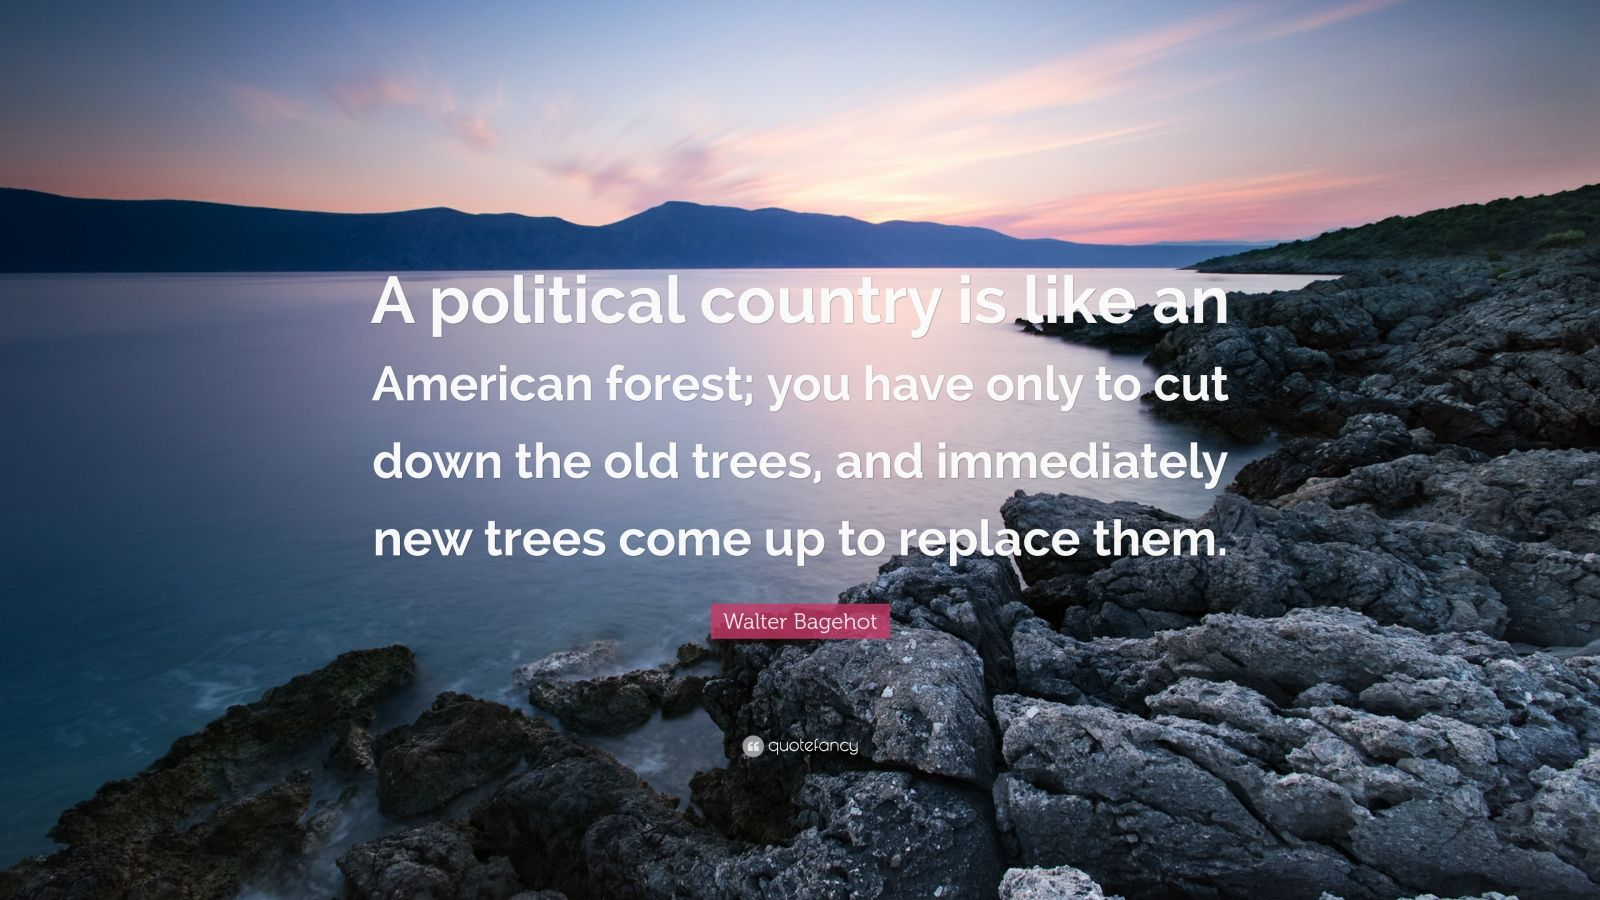 """Walter Bagehot Quote: """"A political country is like an American forest; you have only to cut down the old trees, and immediately new trees come up to replace them."""""""